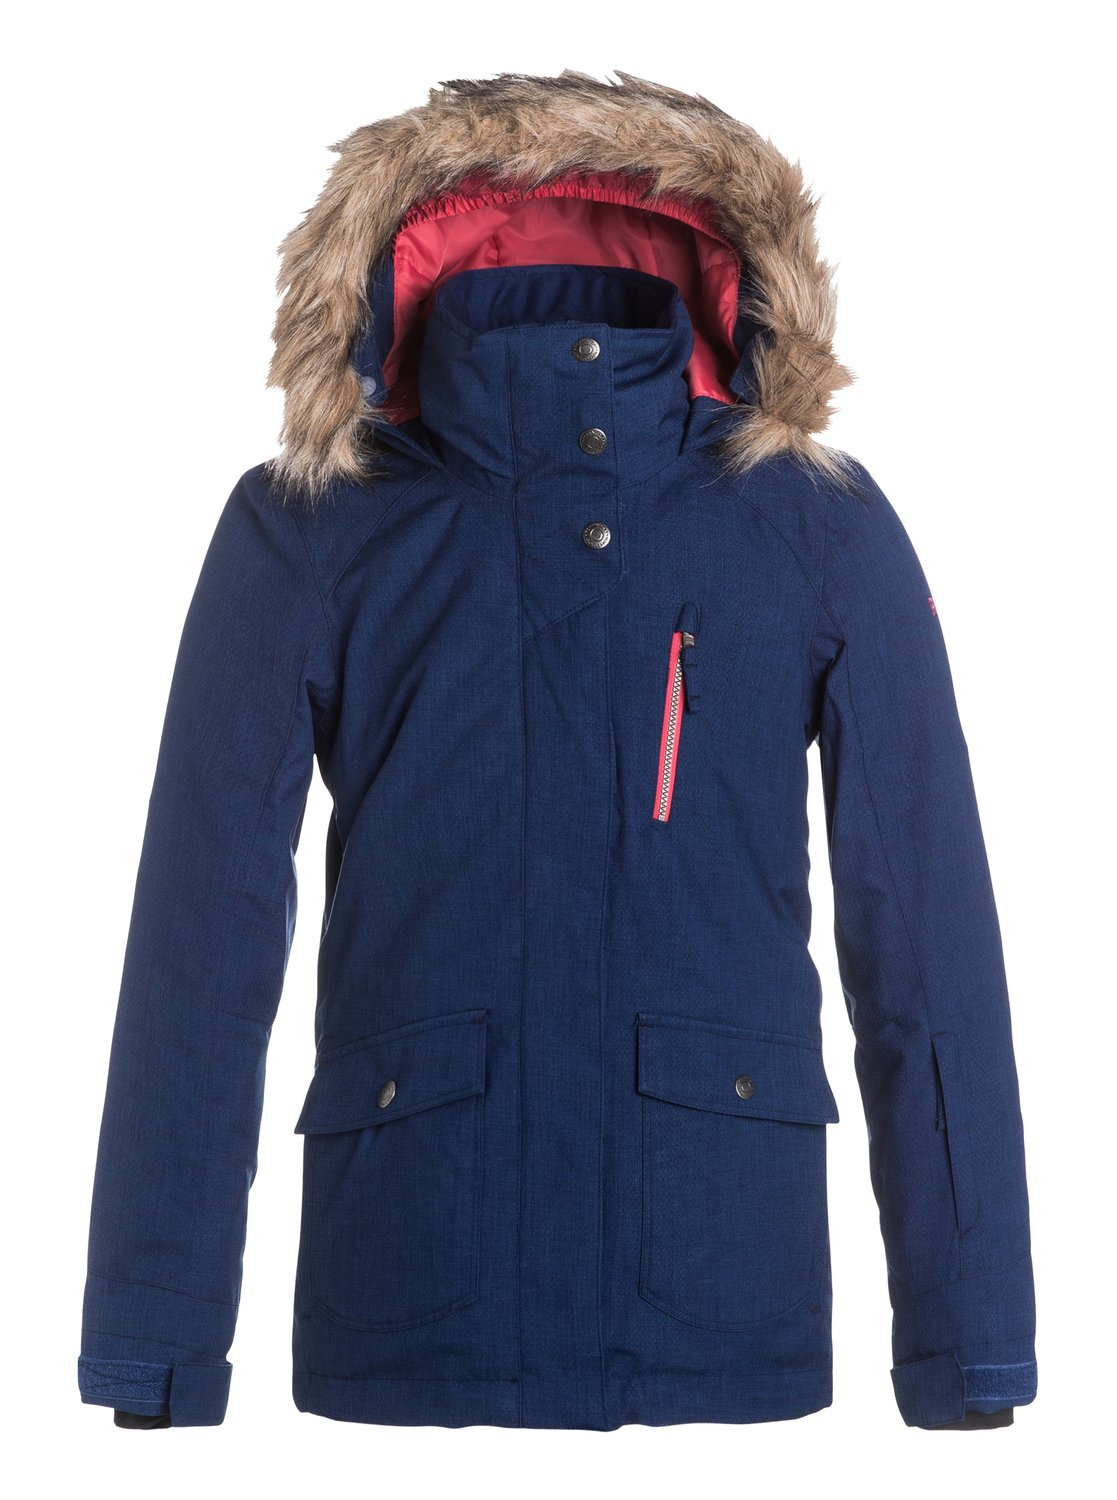 Girls 7-14 Tribe Snow Jacket ERGTJ03014 | Roxy